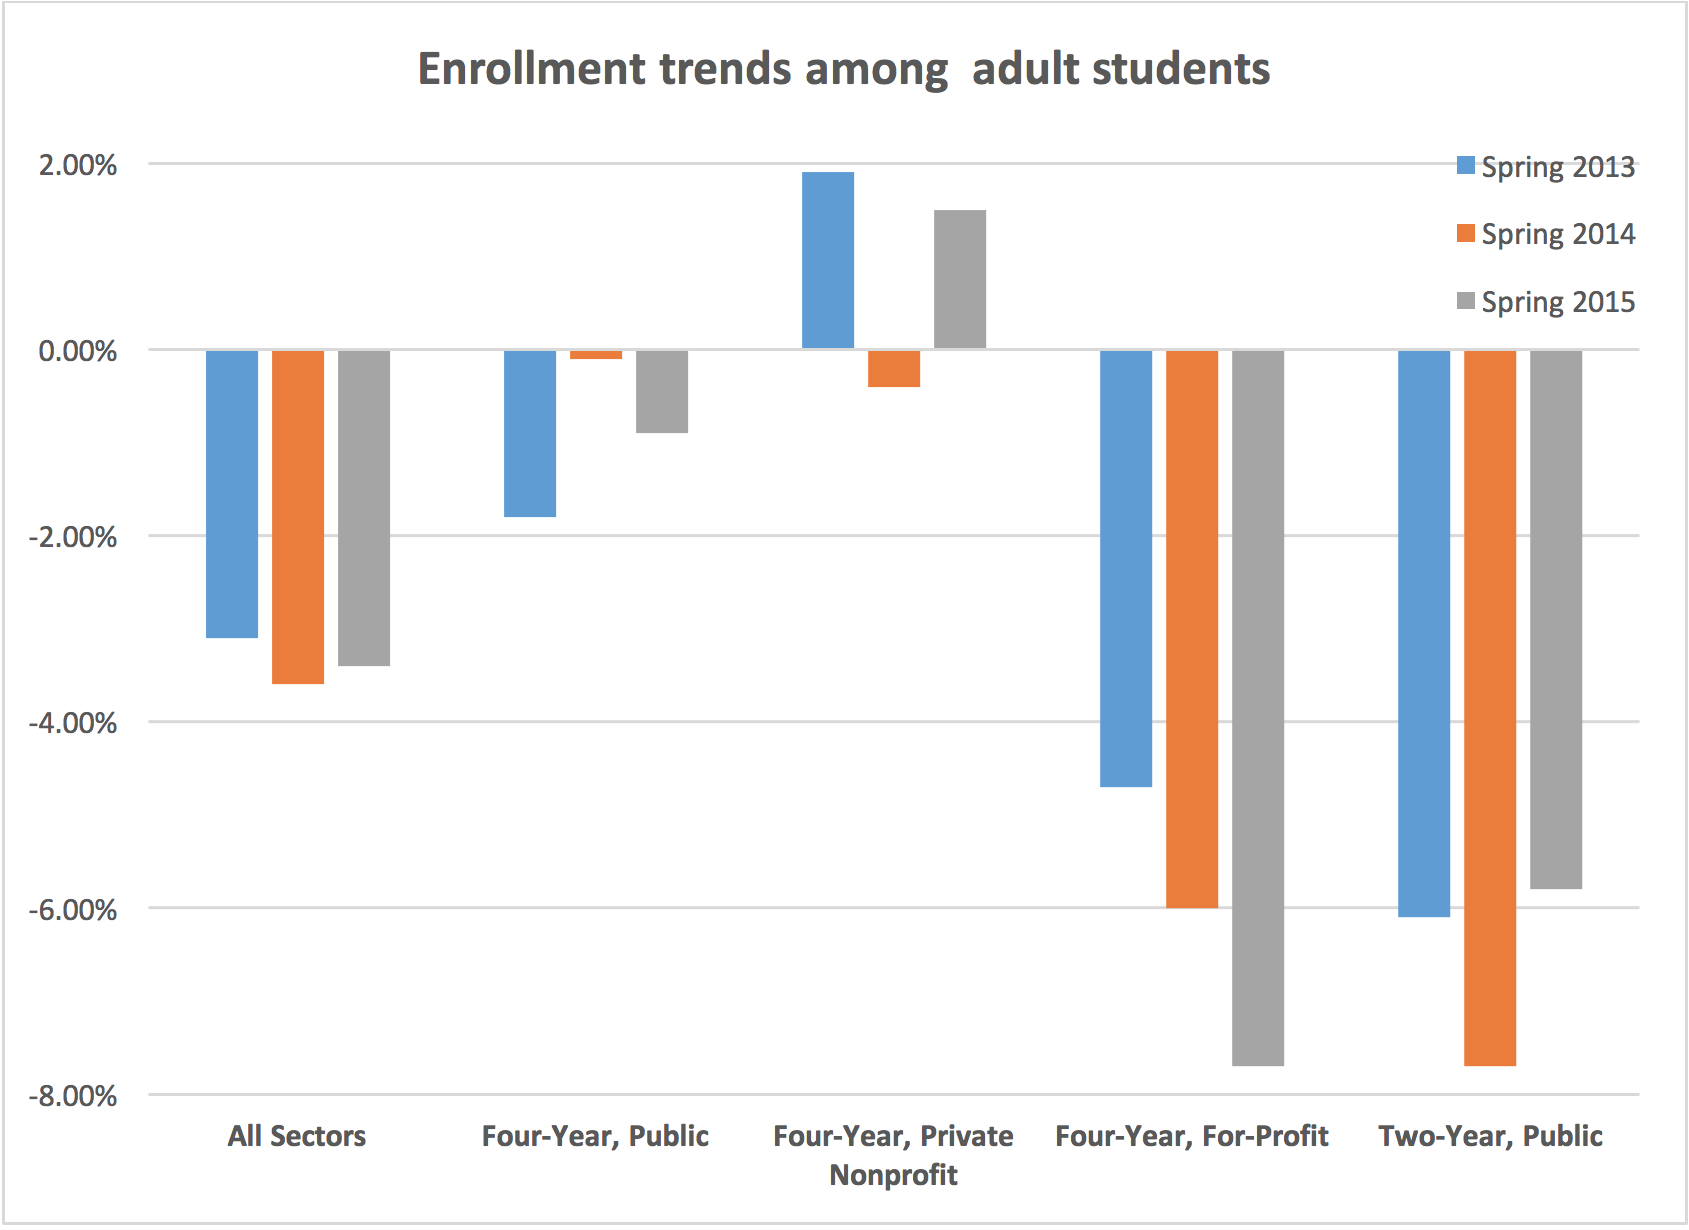 Enrollment trends among adult students